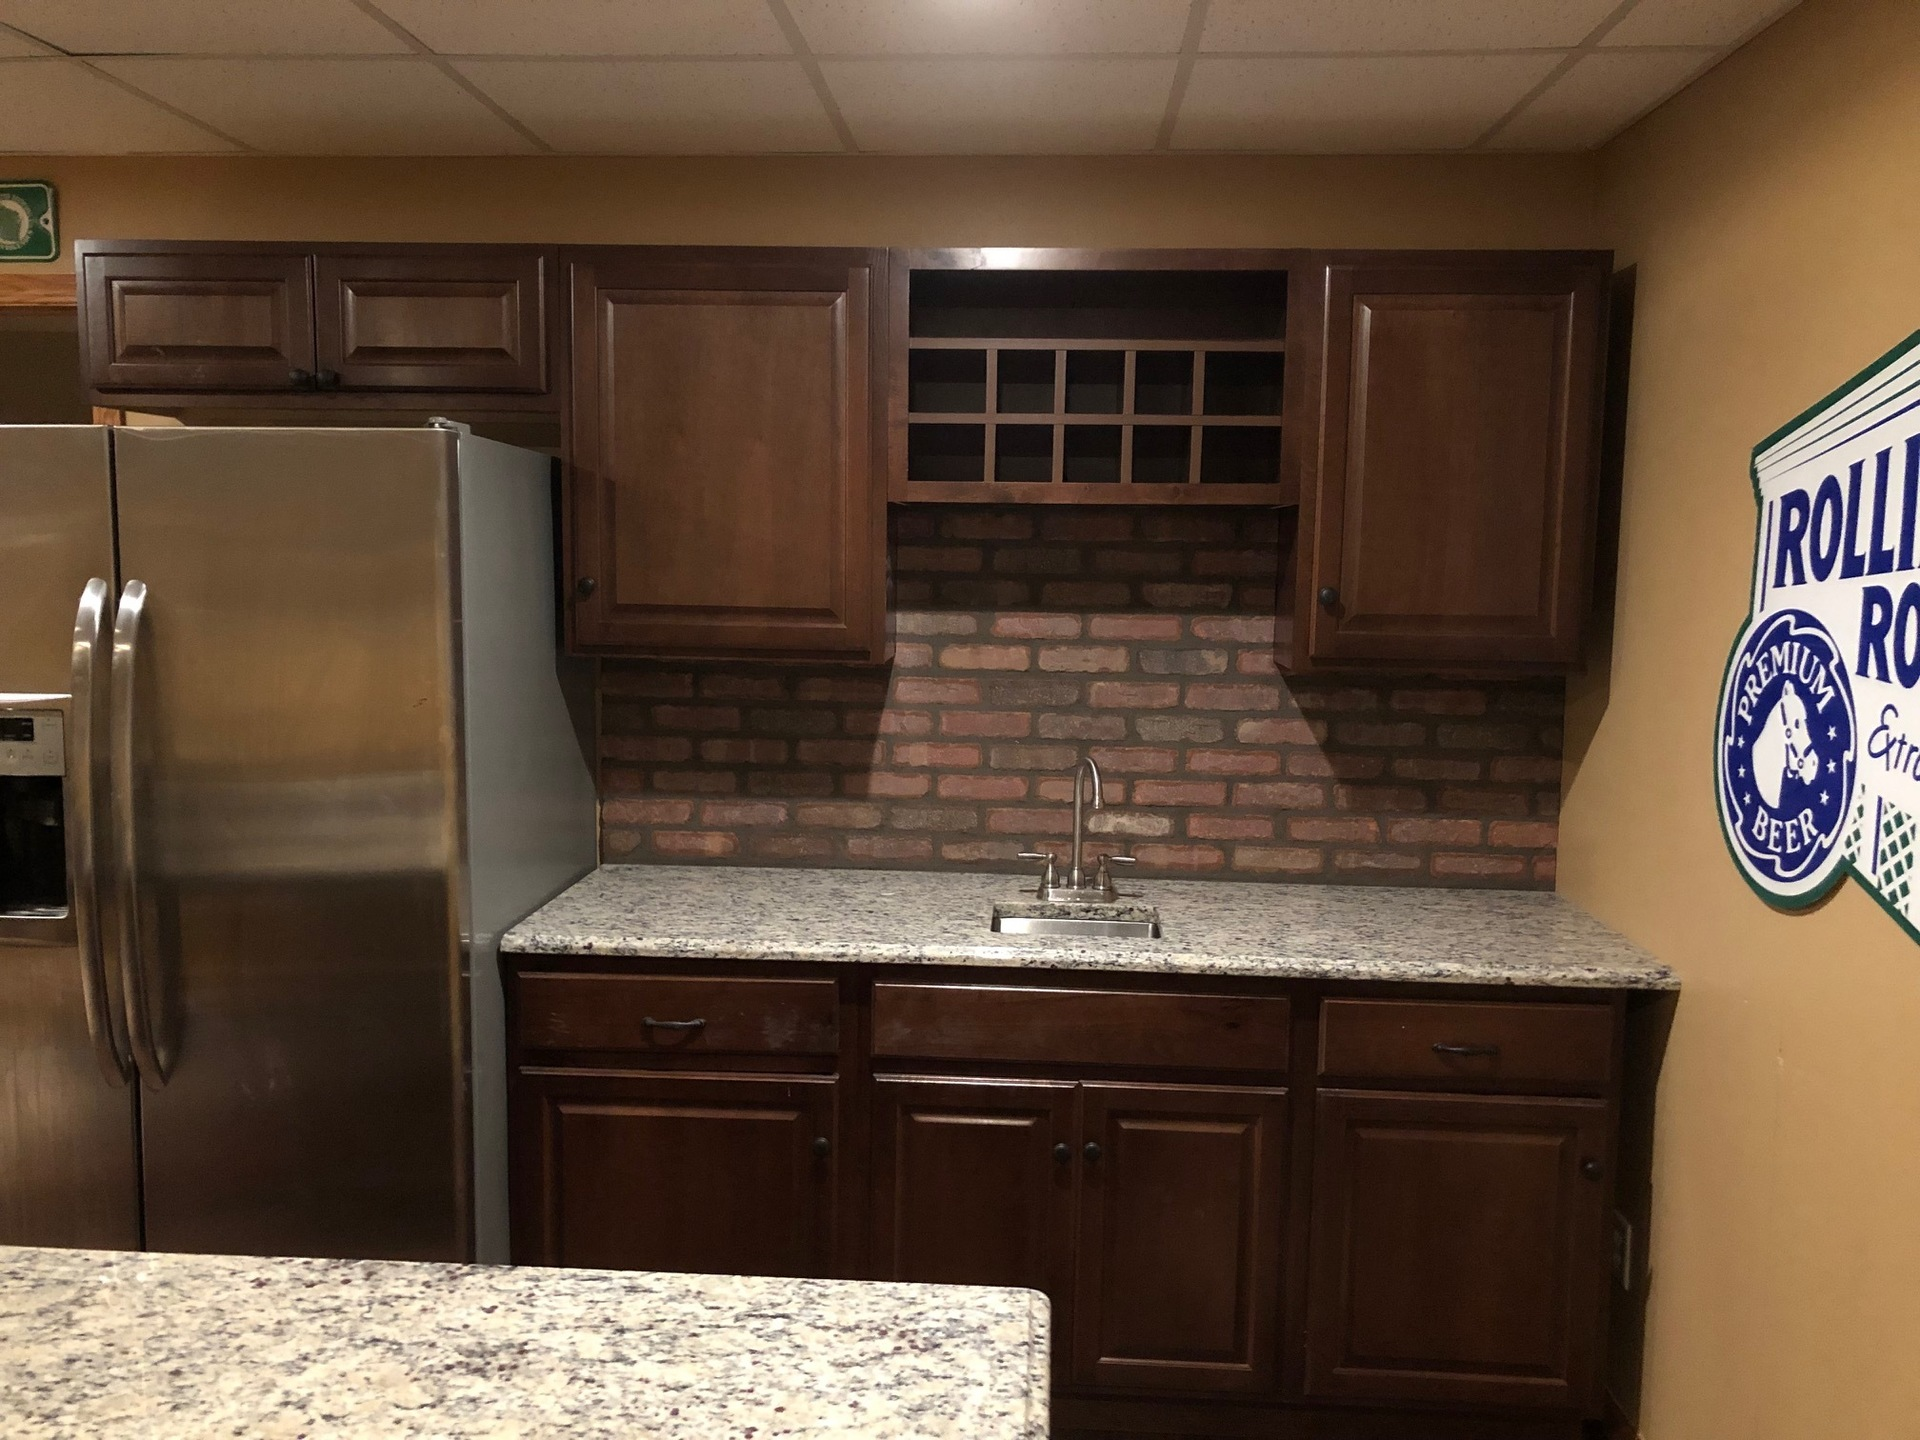 Speedymason can help transform nearly any interior wall or kitchen backsplash and is constructed of high grade fiber composite material to provide durability and strength.